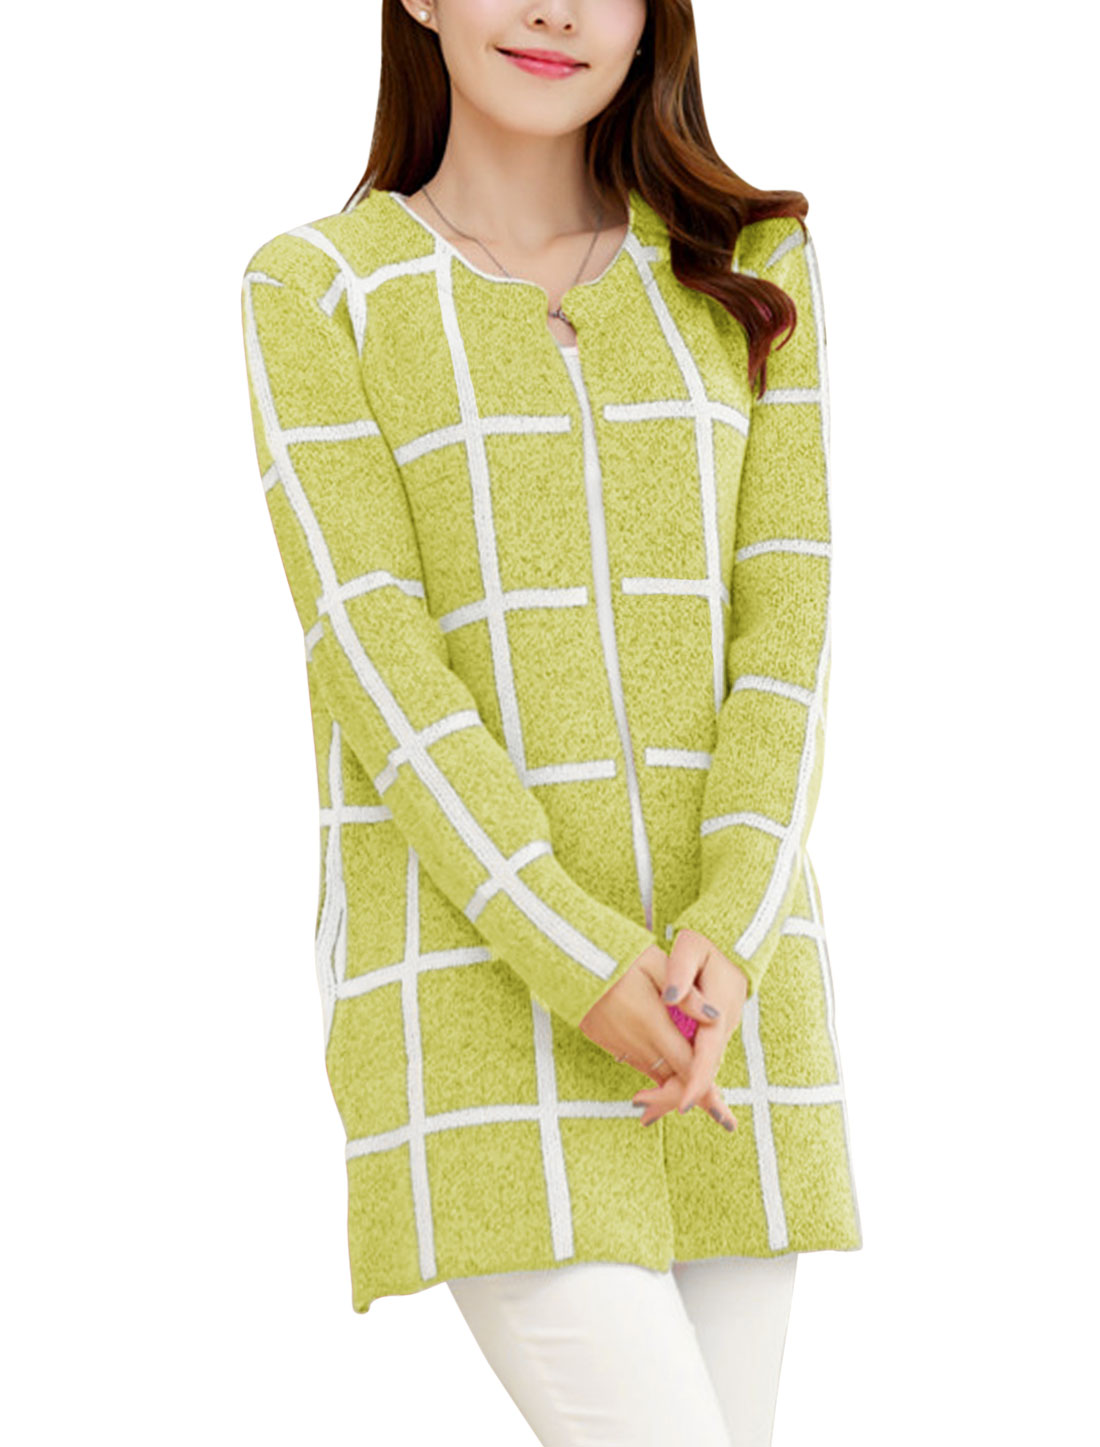 Lady Plaids Long Sleeve Buttonless Tunic Leisure Cardigan Lime S